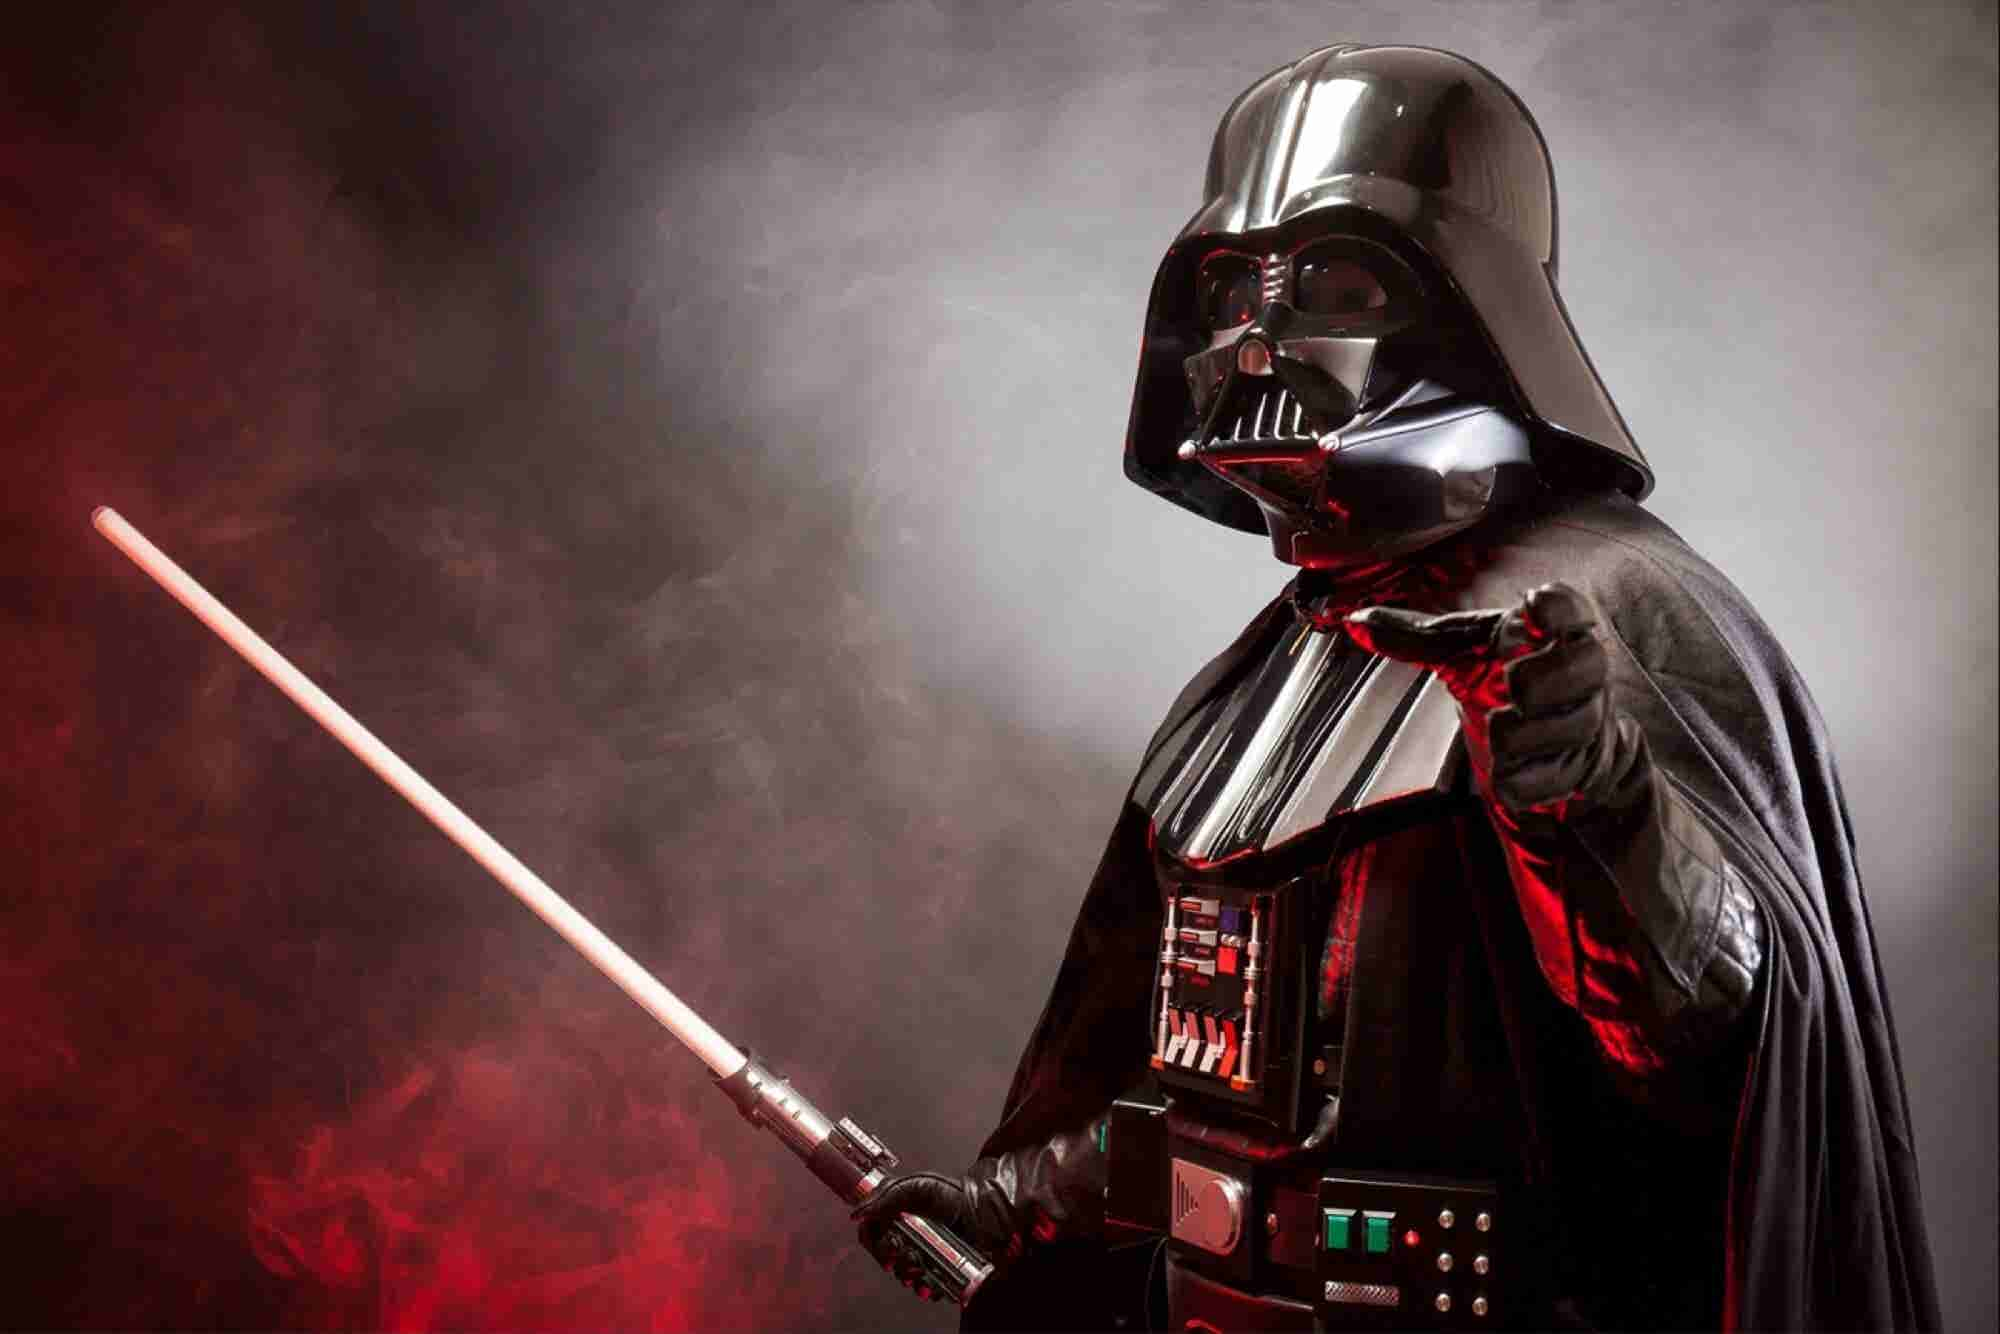 How Star Wars Will Help You Raise Capital for Your Company